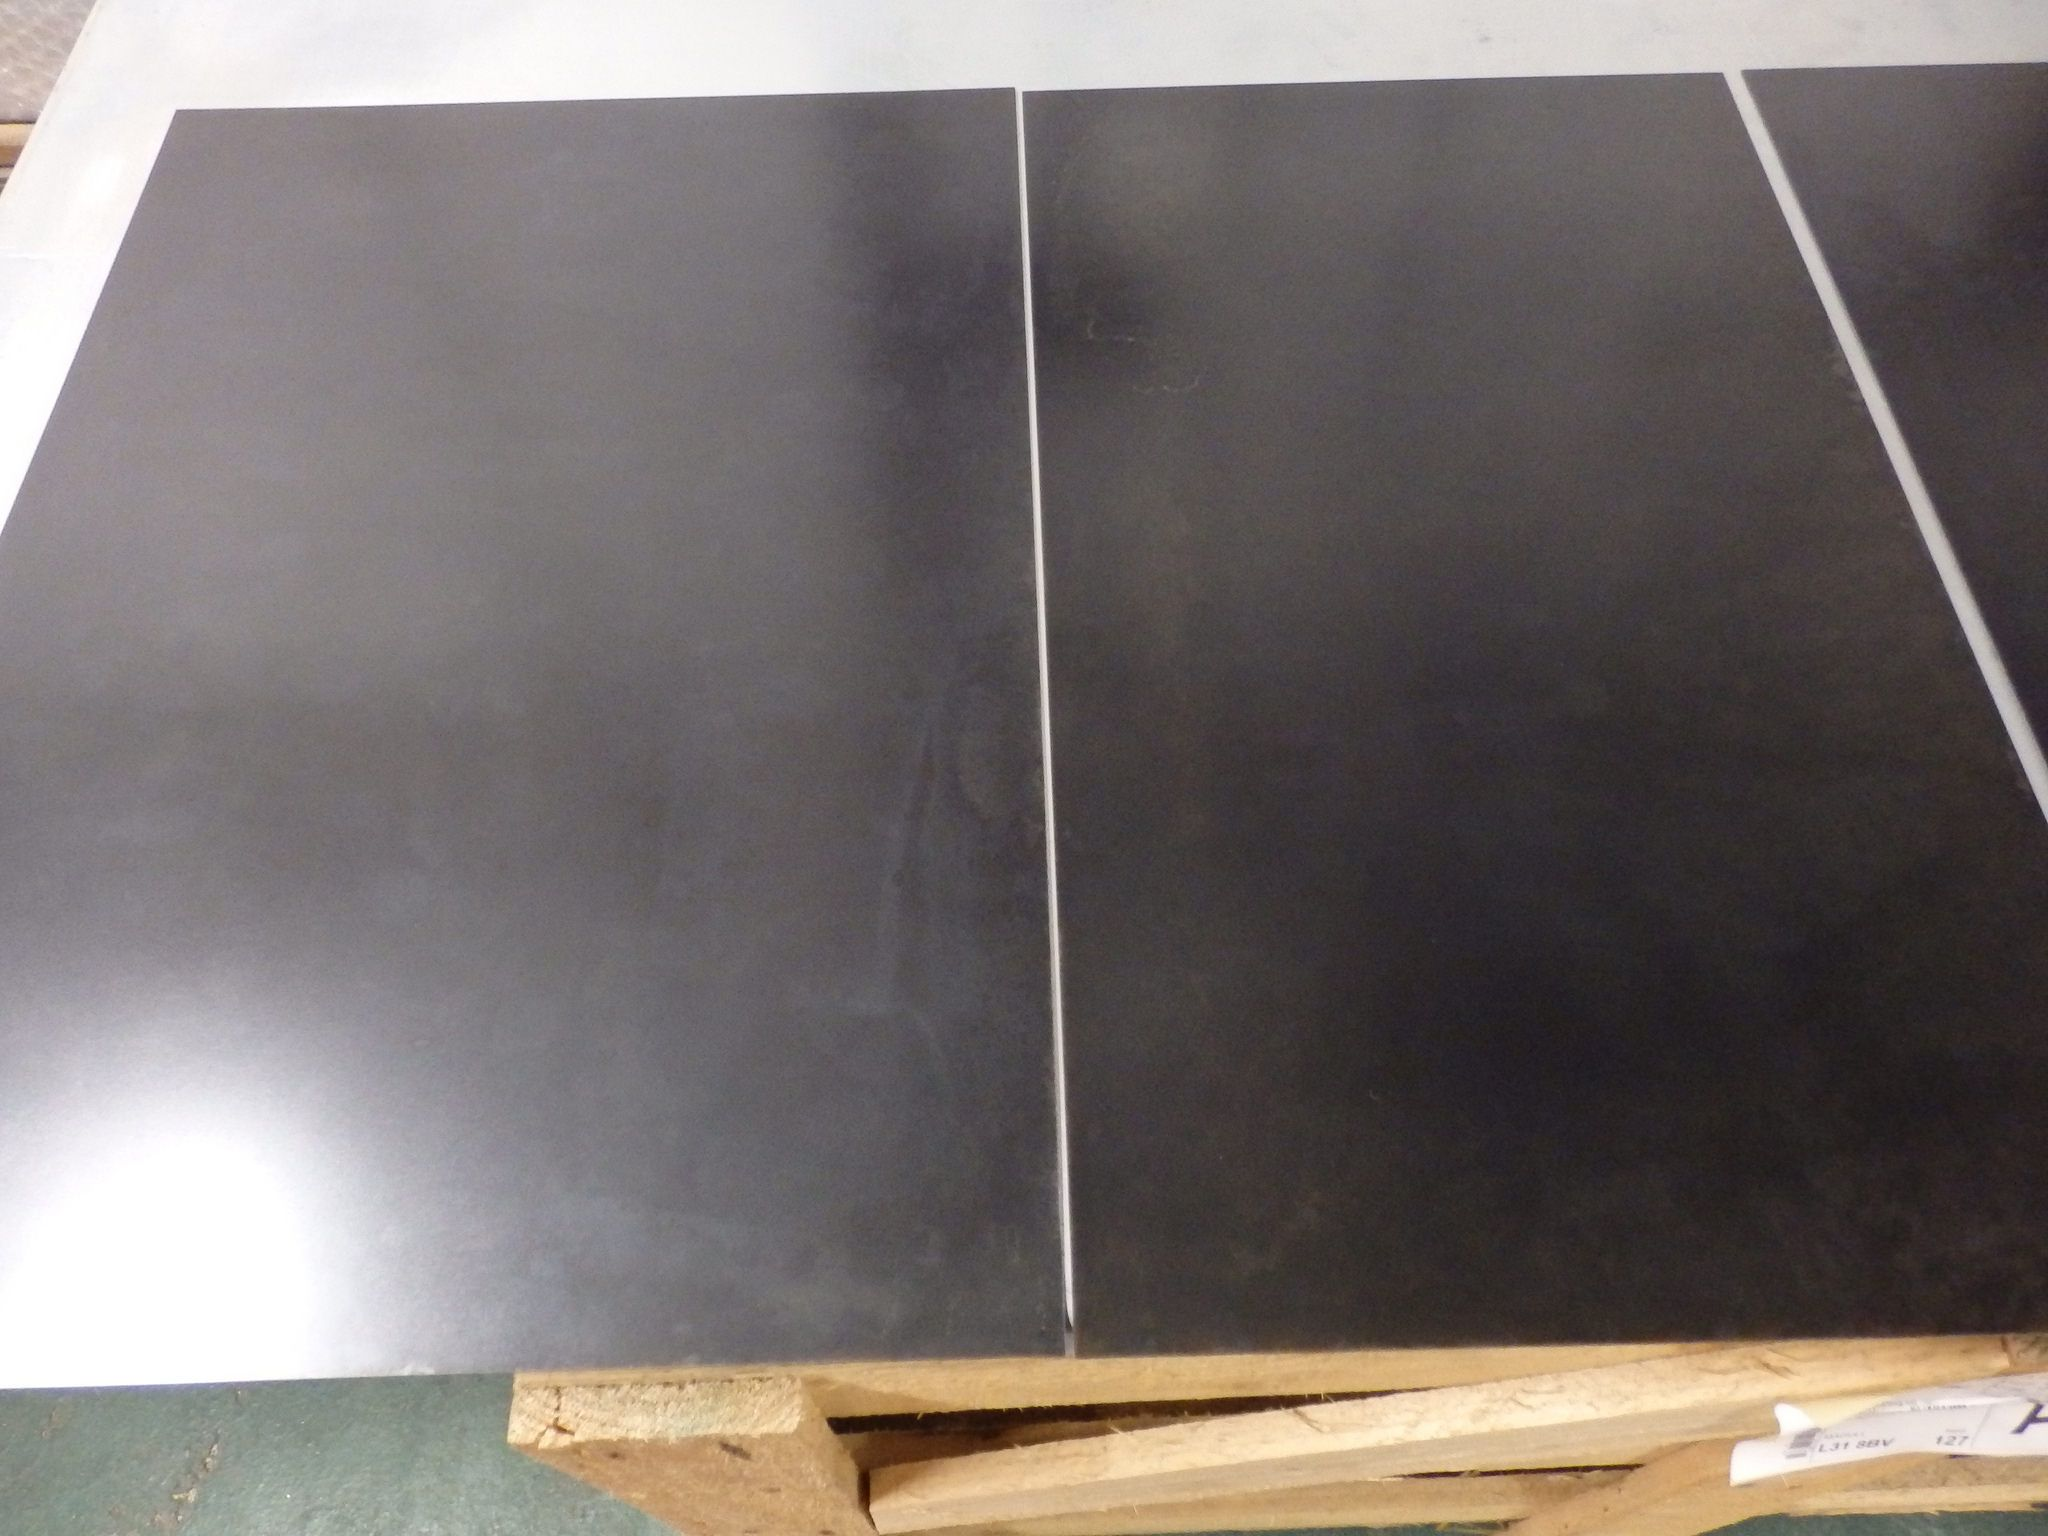 80 Blackened Steel Sheets Lacquered Blackened Steel Steel Sheet Metal Steel Sheet